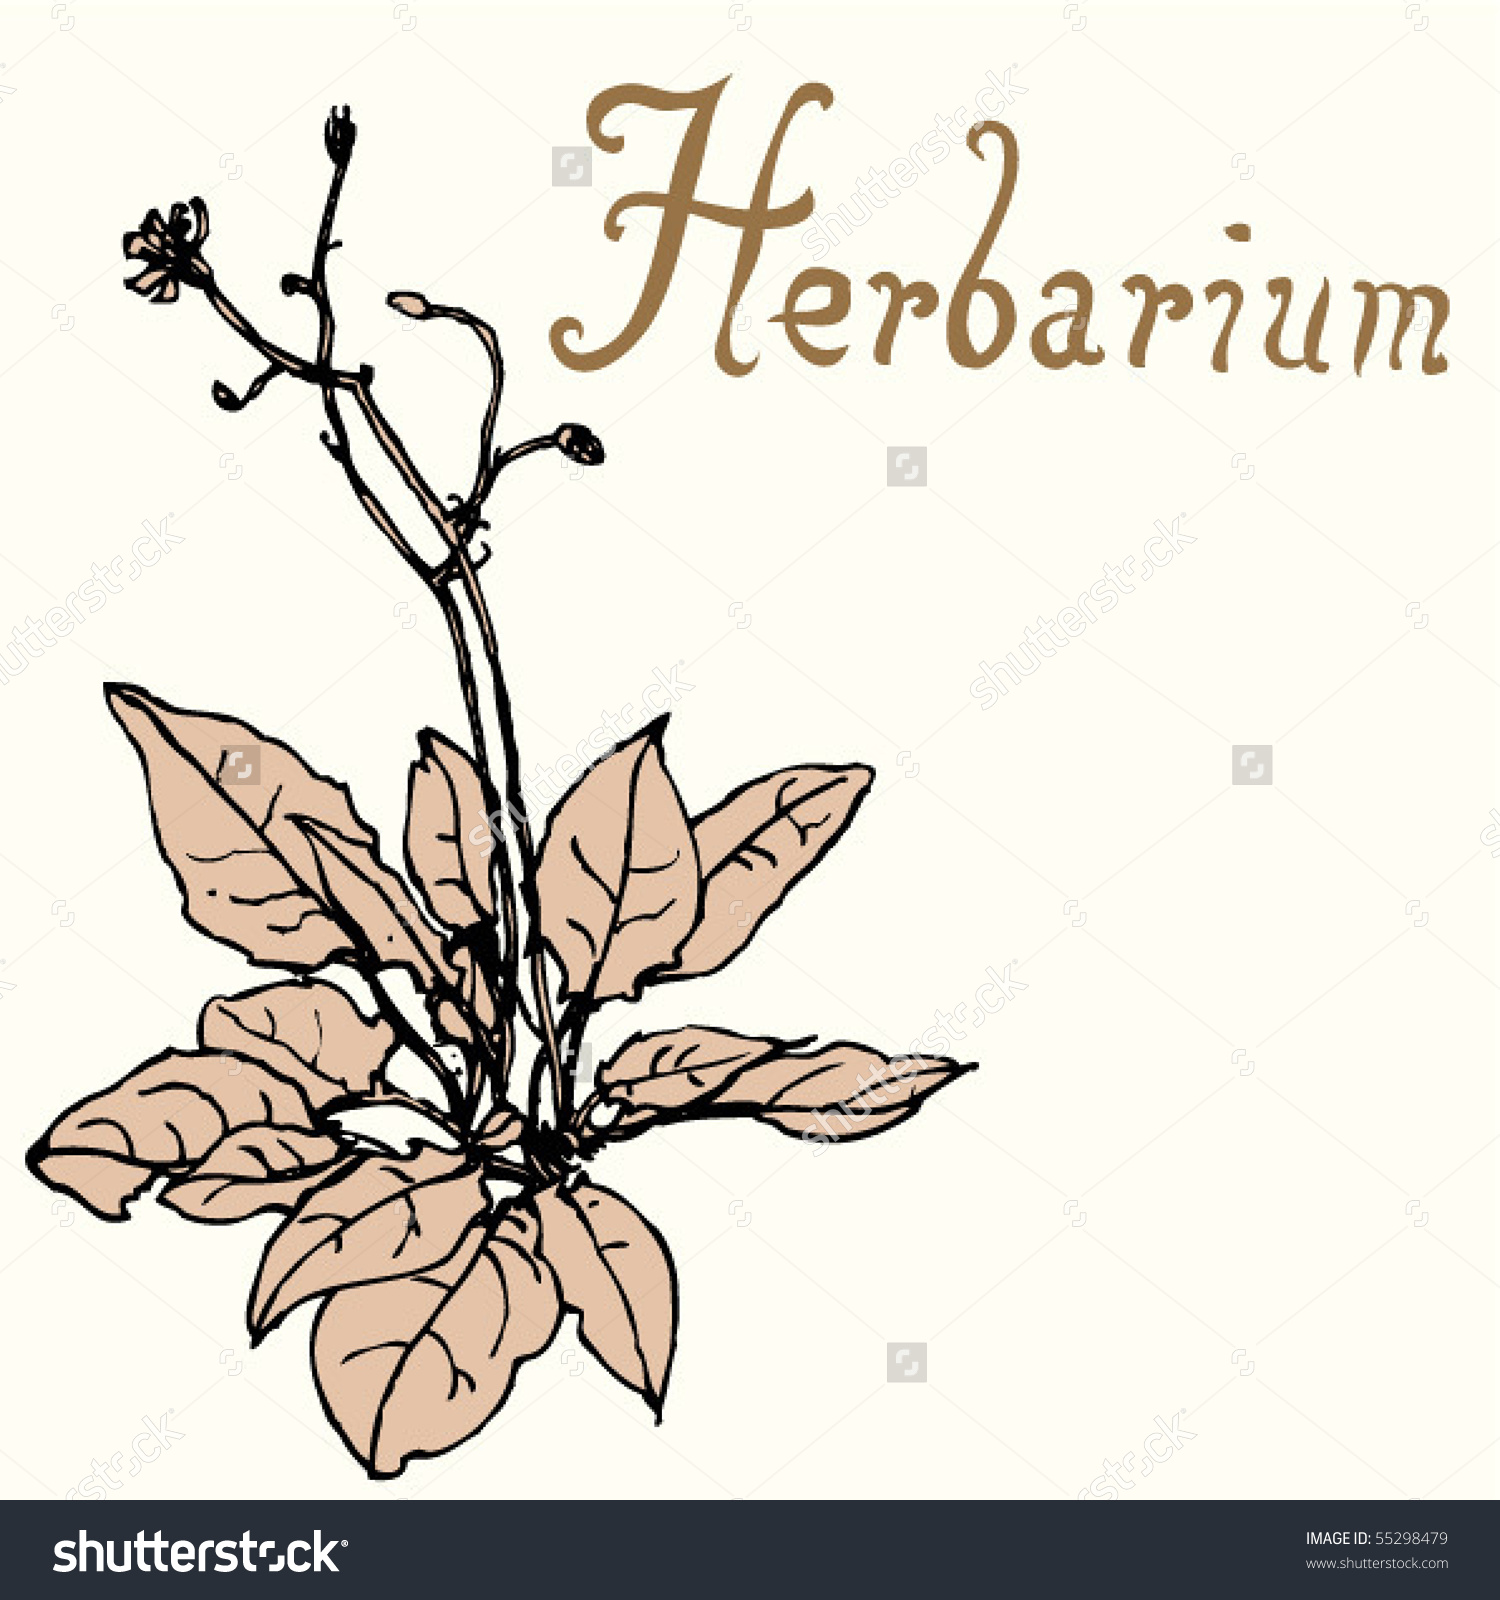 Herbarium Stock Vector 55298479.